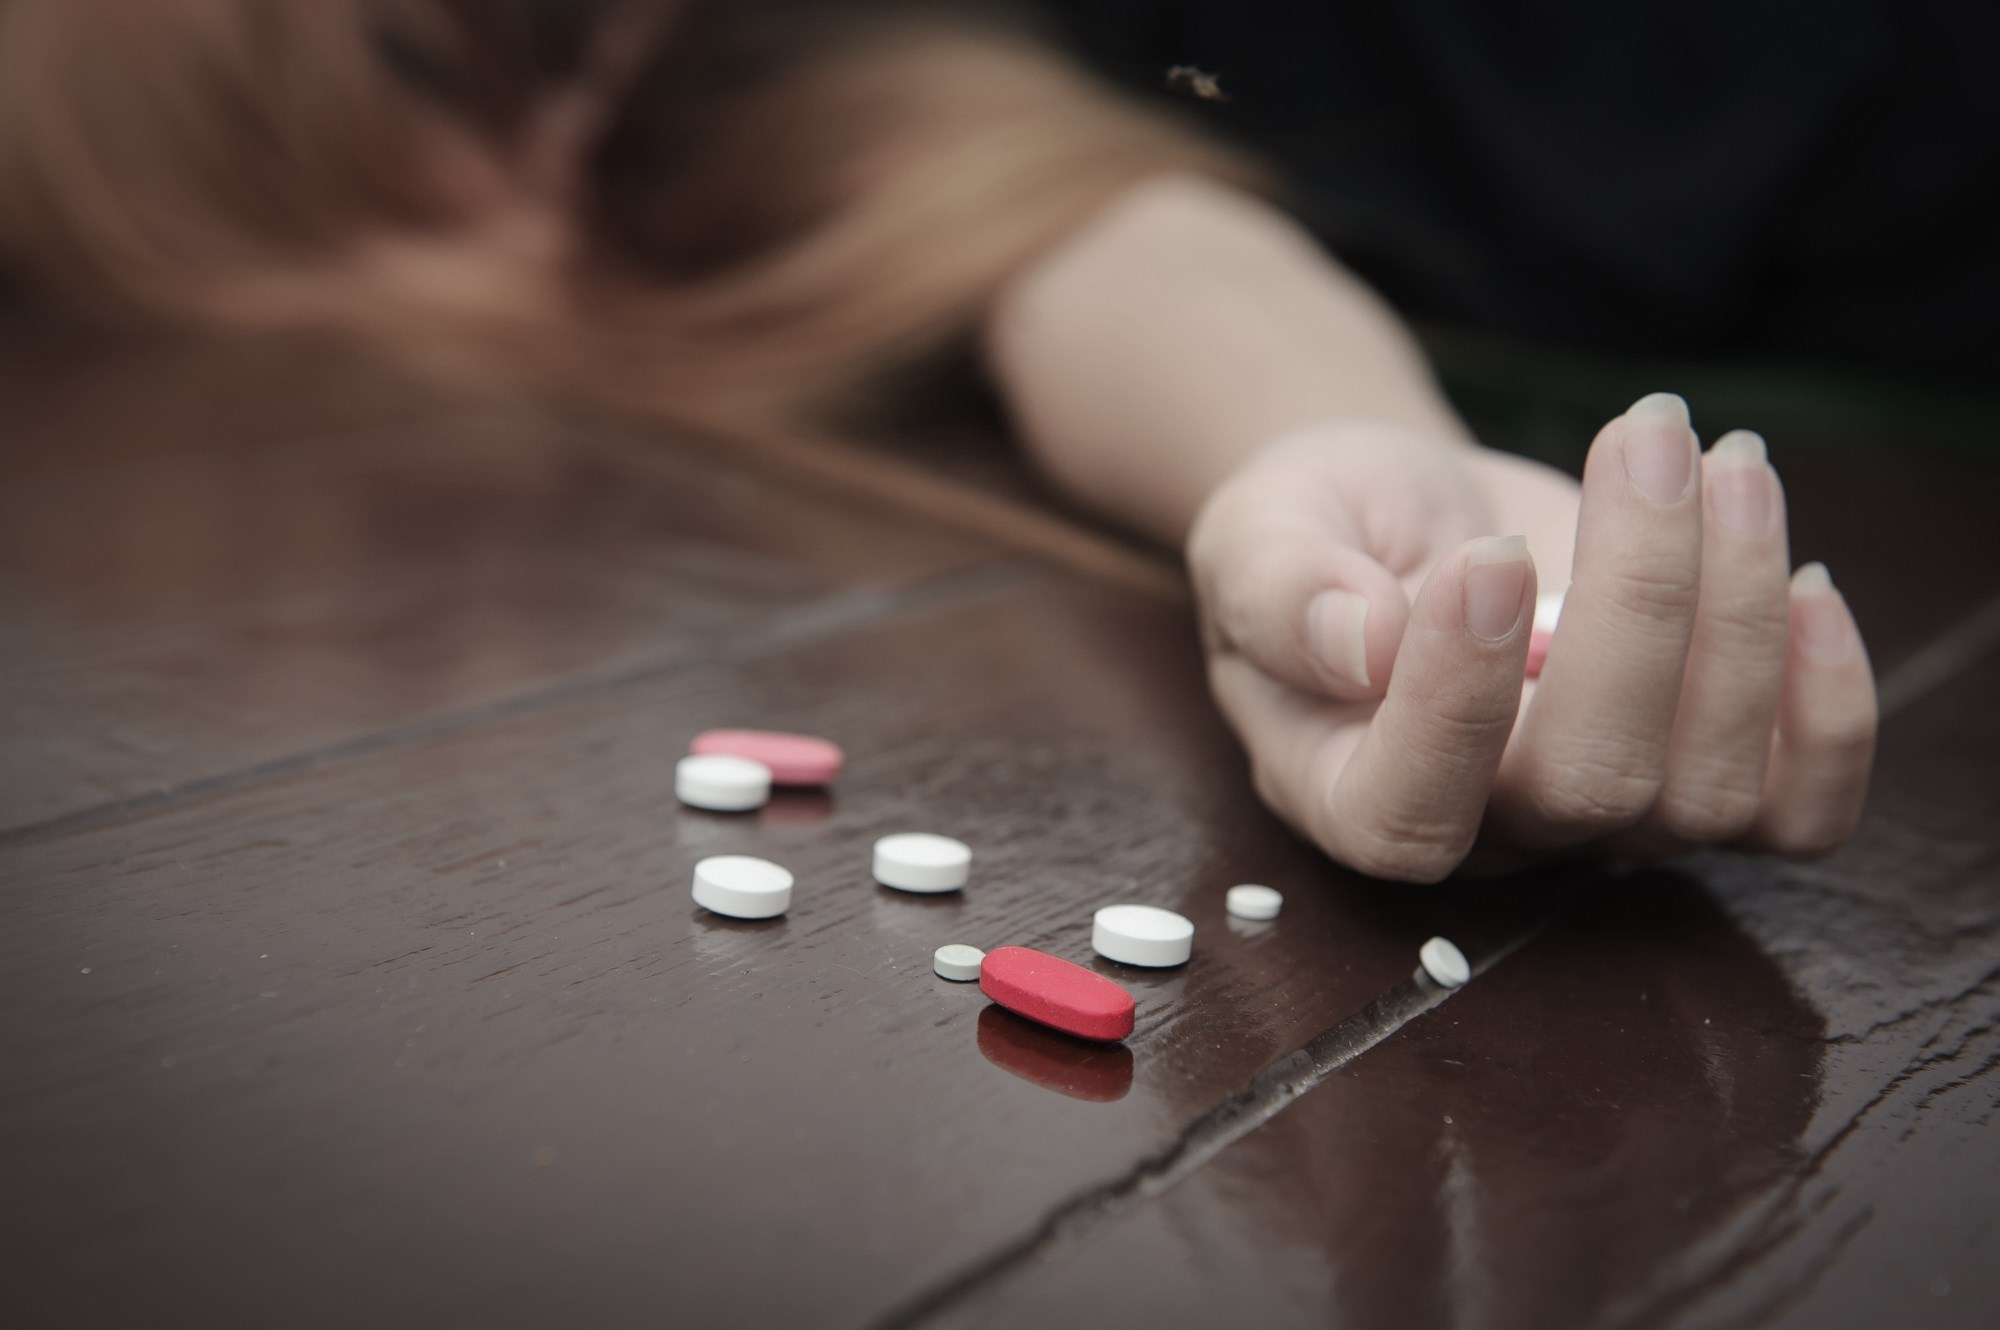 Use of Psychotropic Drugs in Suicide Attempt Linked to Prescribed Access